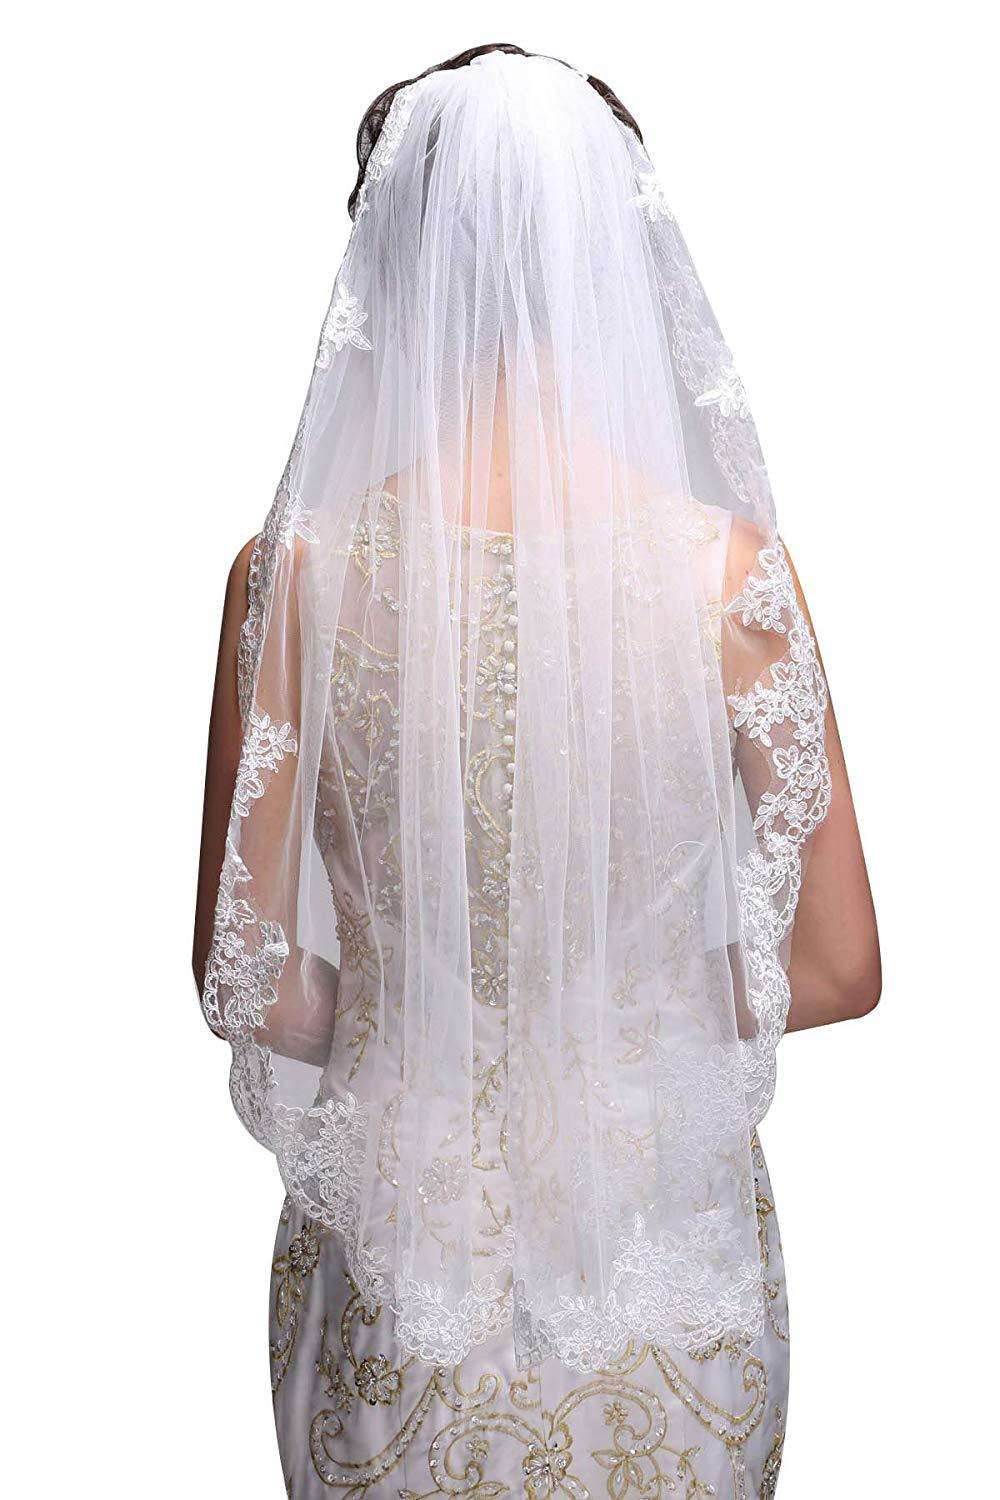 White/Ivory Wedding Veil Short Bridal Veil Head Veil Wedding Accessories 2020